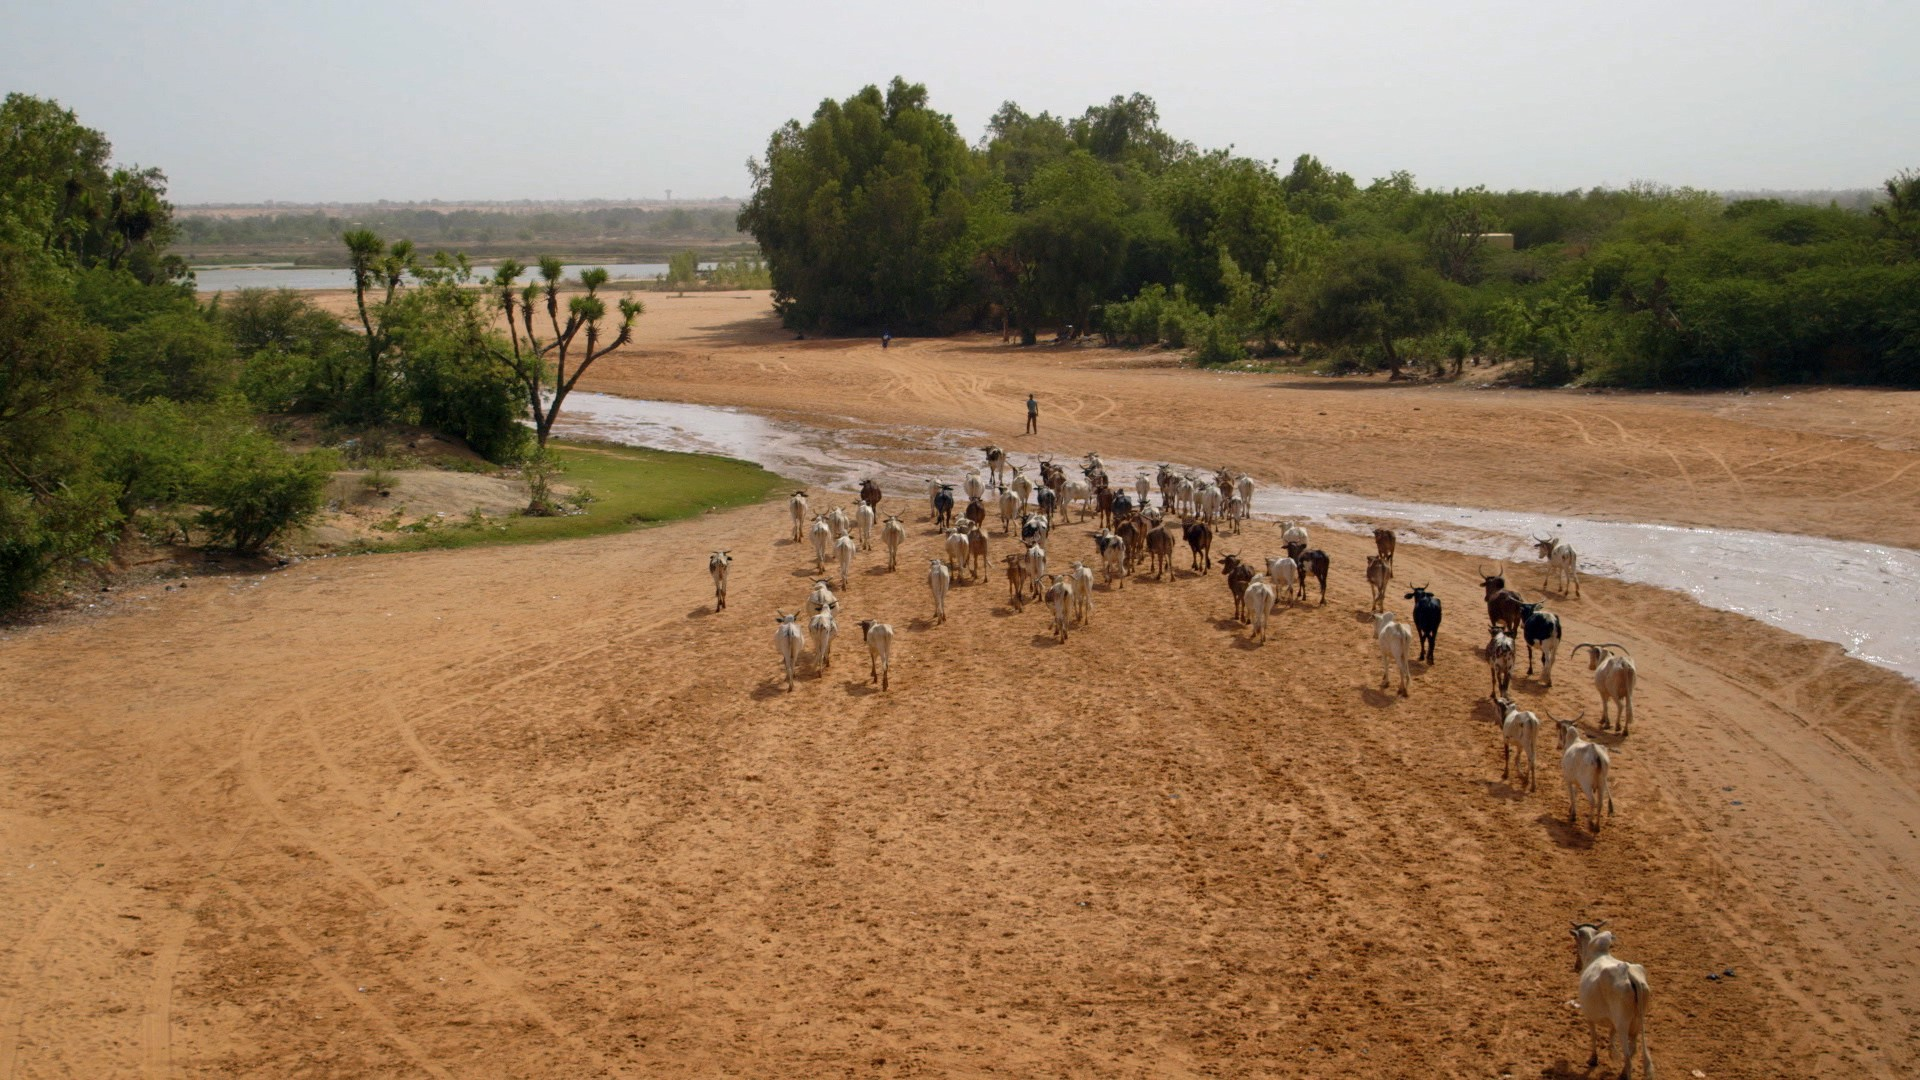 A person leads a herd of cattle across a stretch of steppe